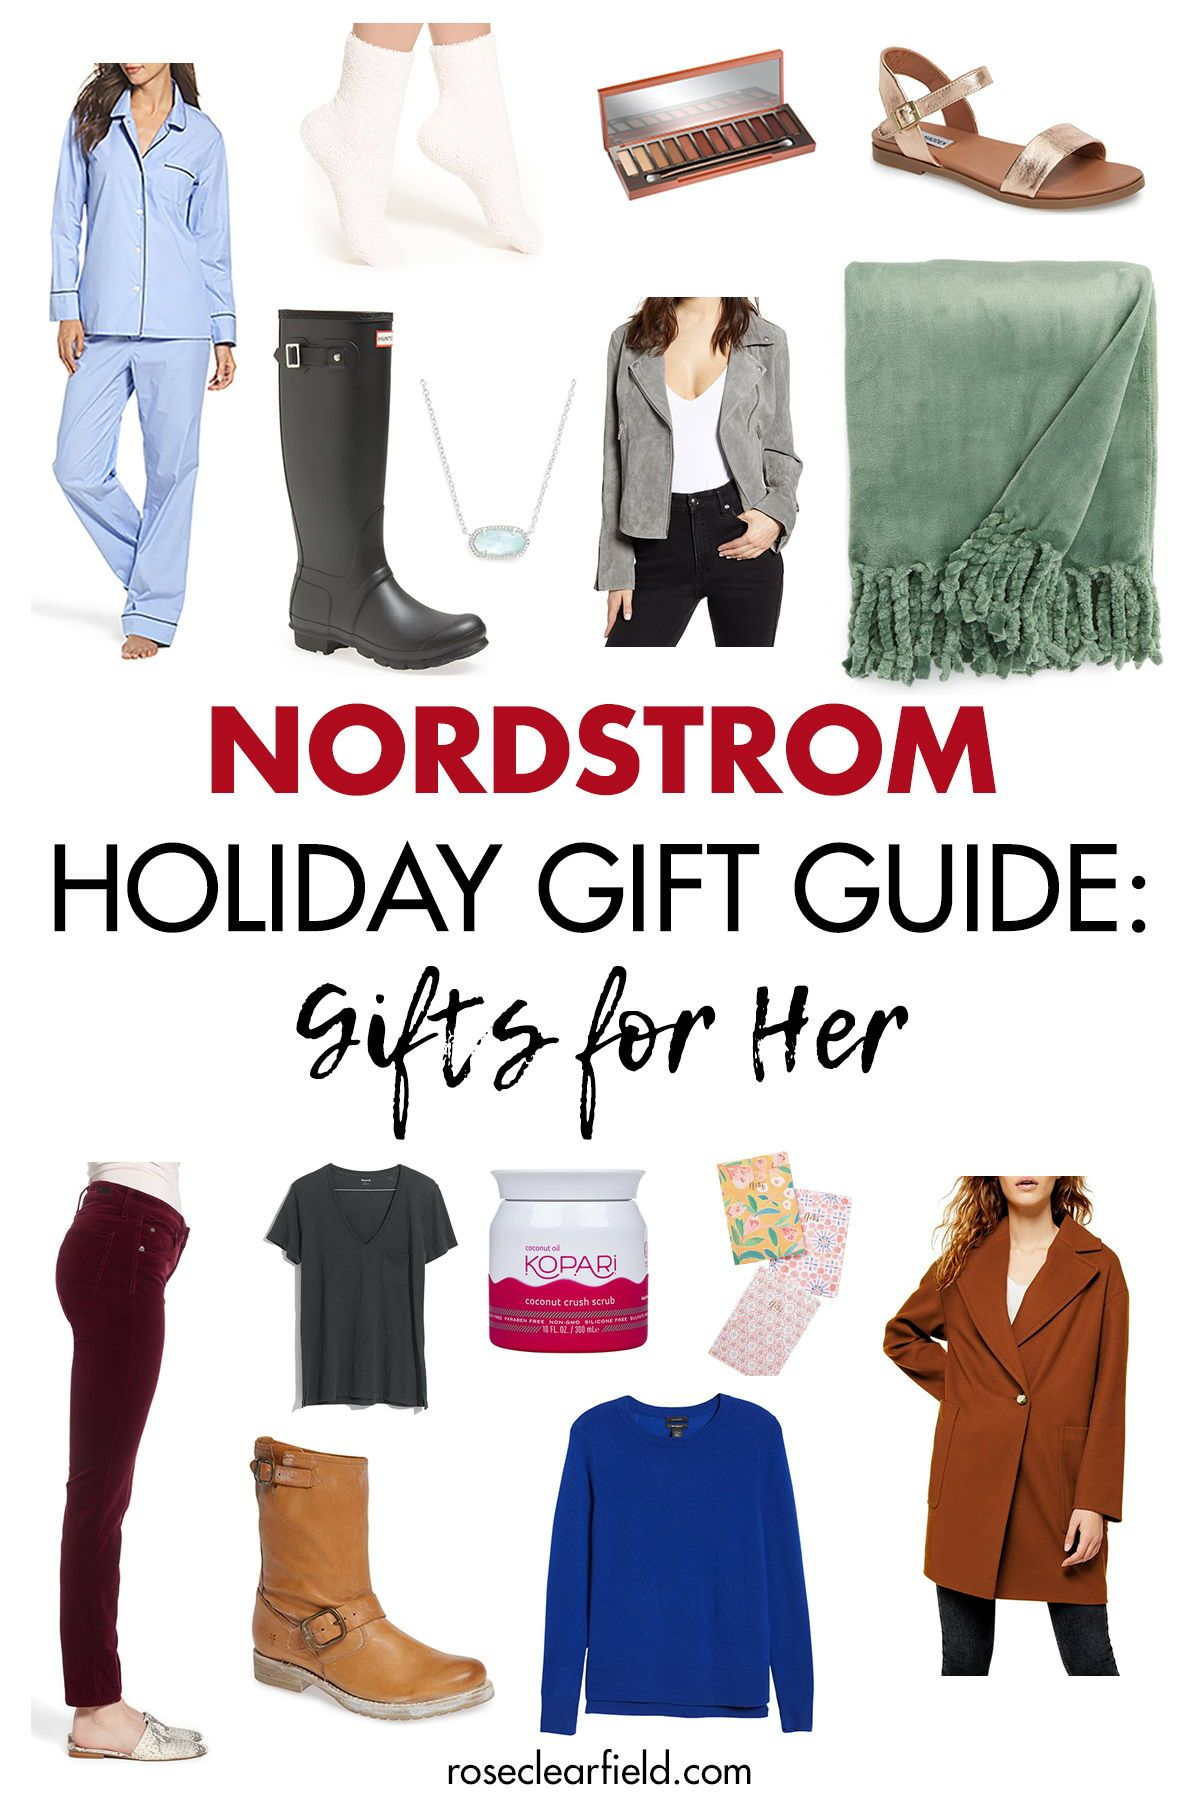 Nordstrom Holiday Gift Guide: Gifts for Her (With images ...